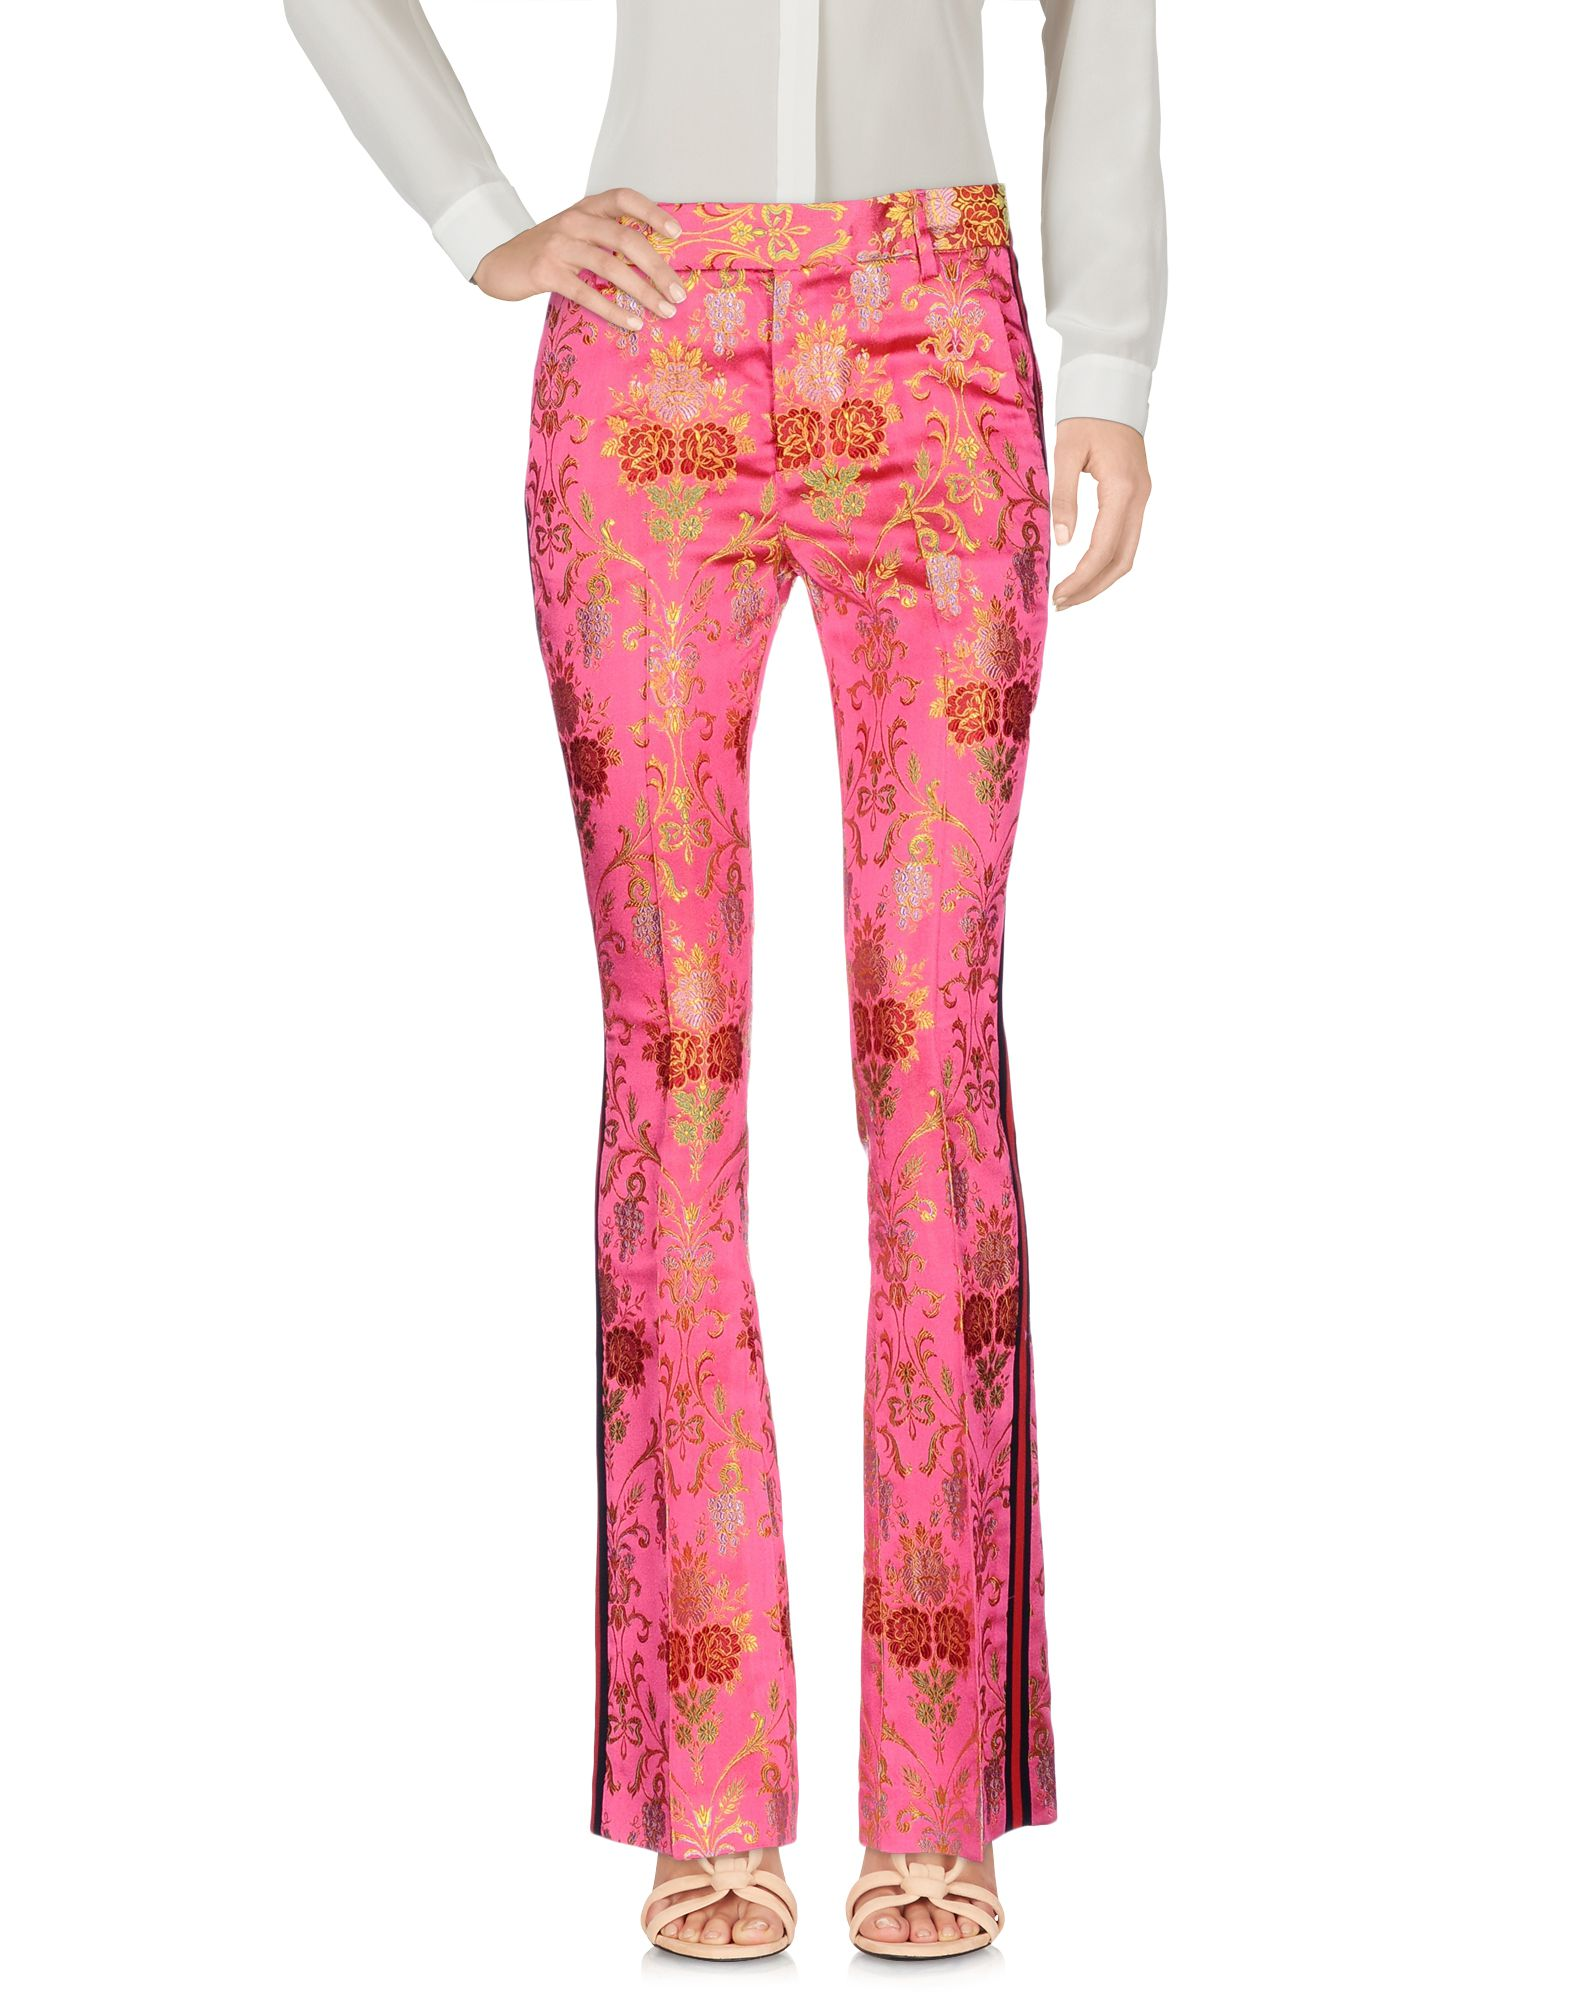 Pantalone Femme By Michele Rossi donna - - 13121475IM  hohes Ansehen